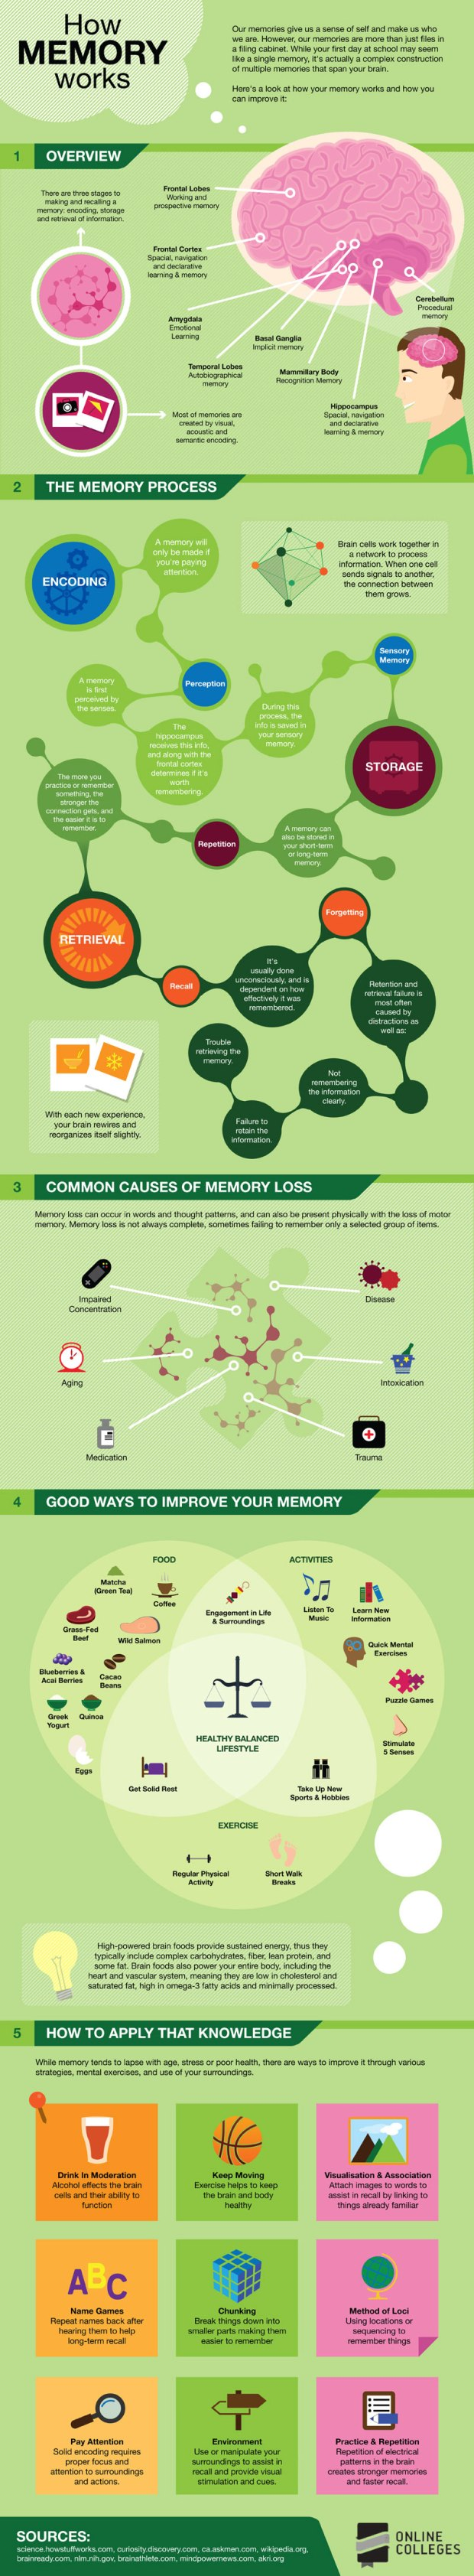 How-Memory-Works-Infographic